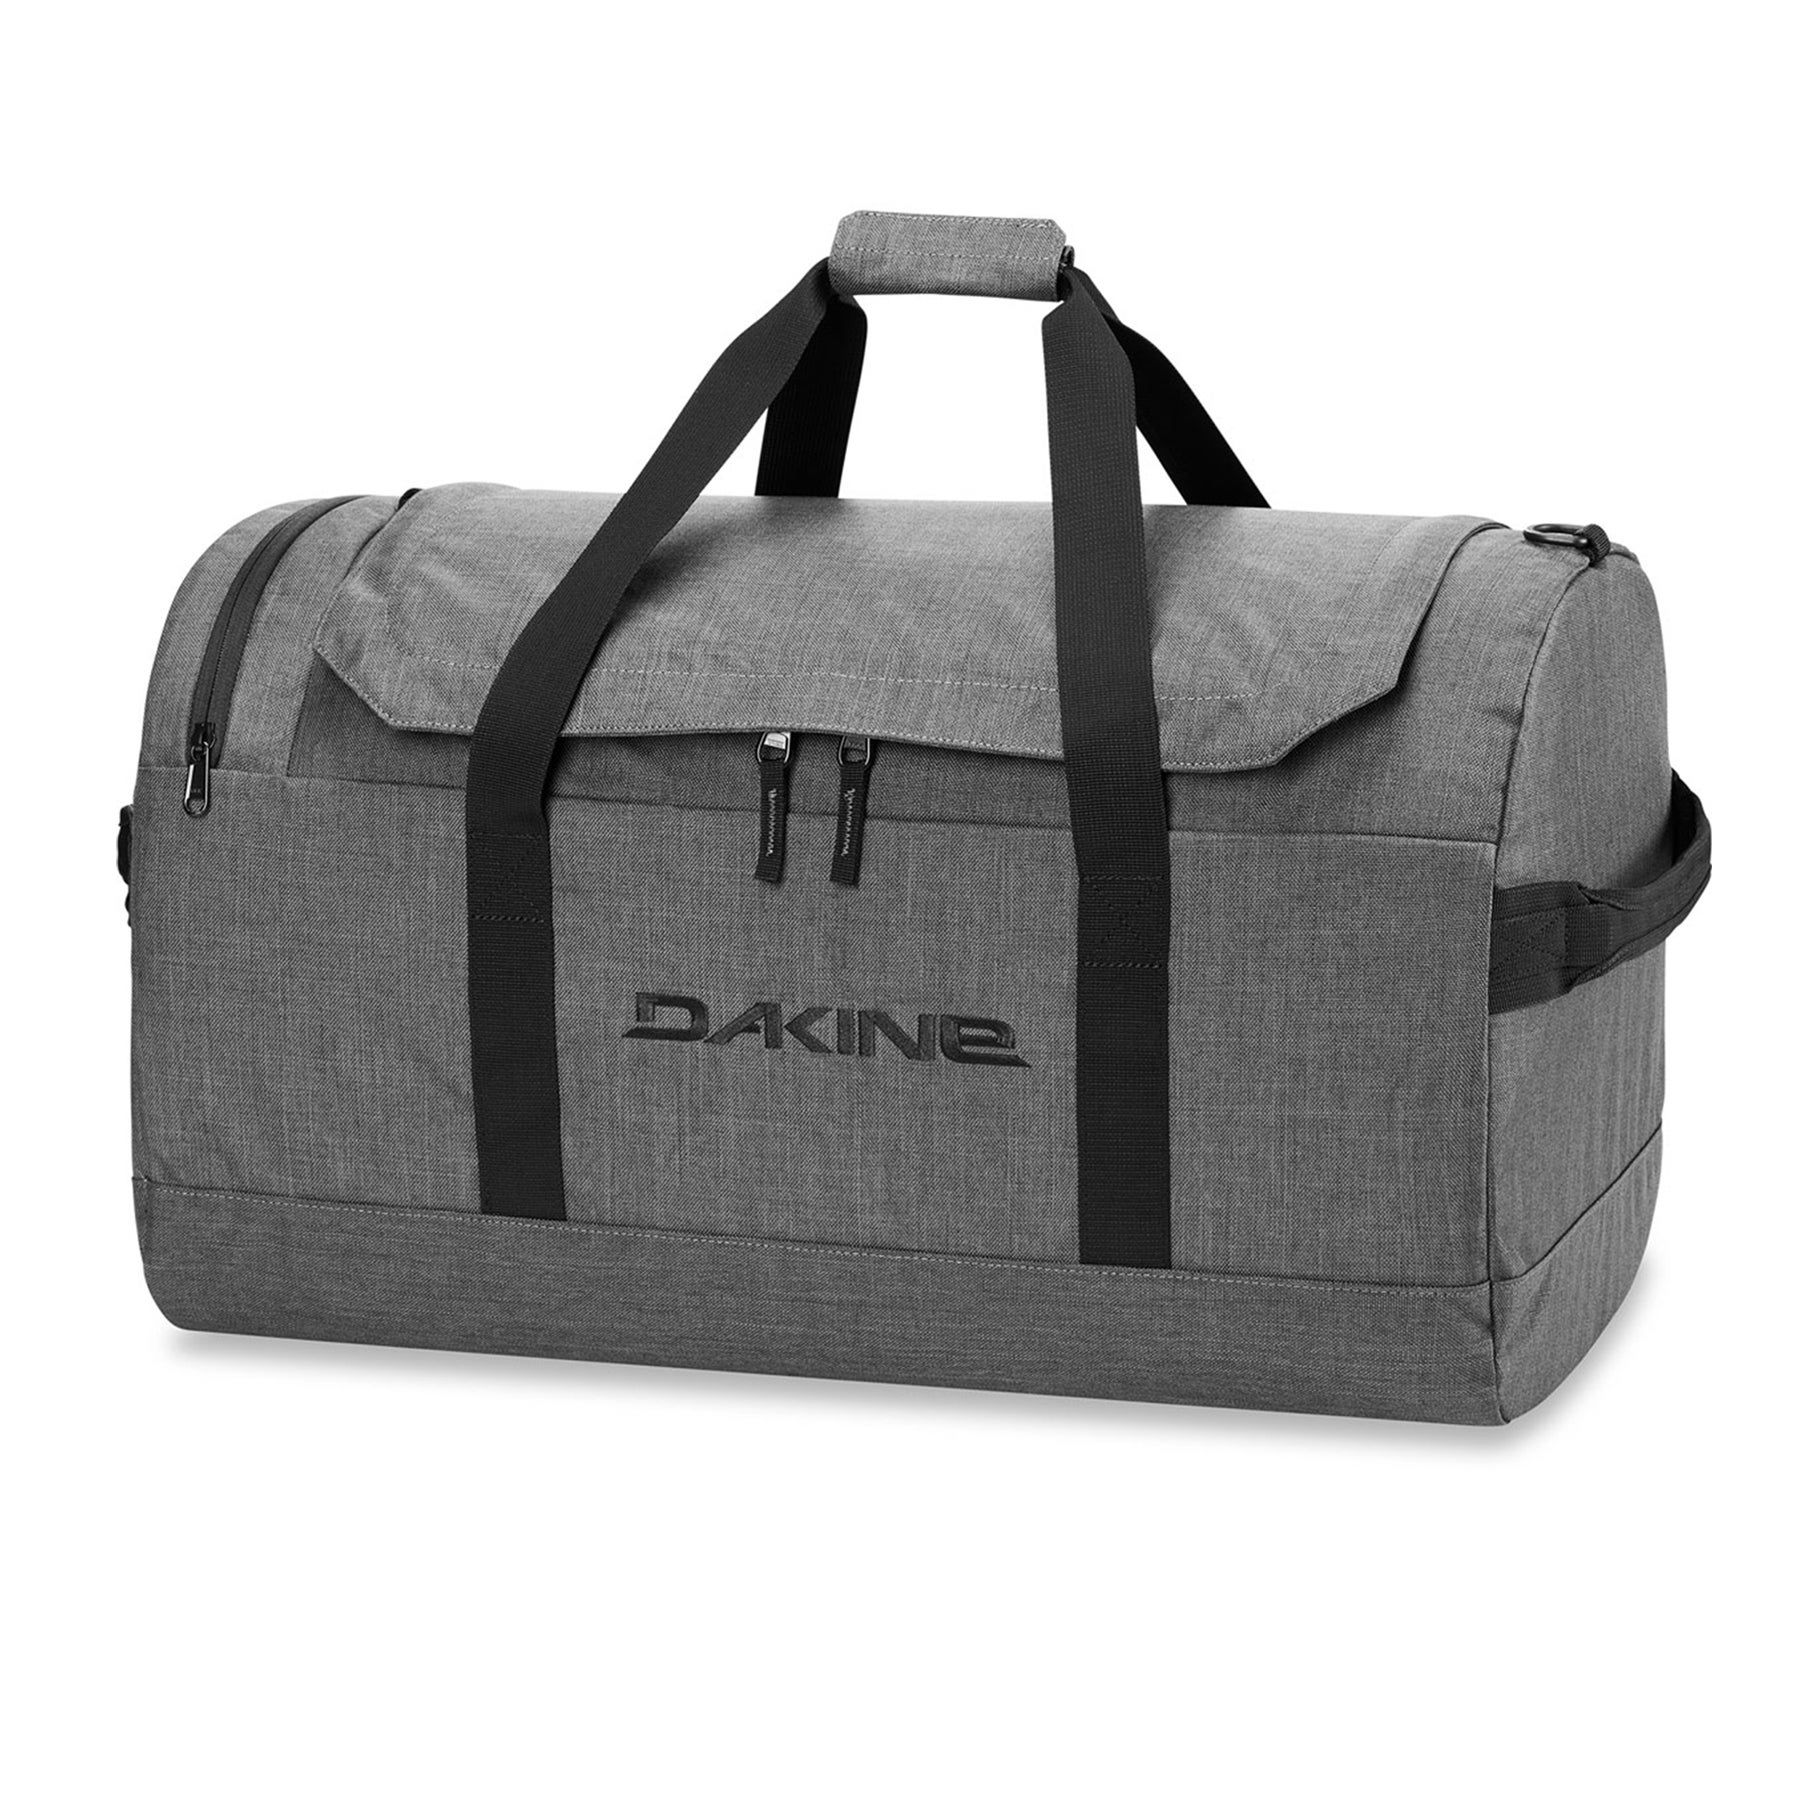 Dakine EQ 70l Duffle Bag